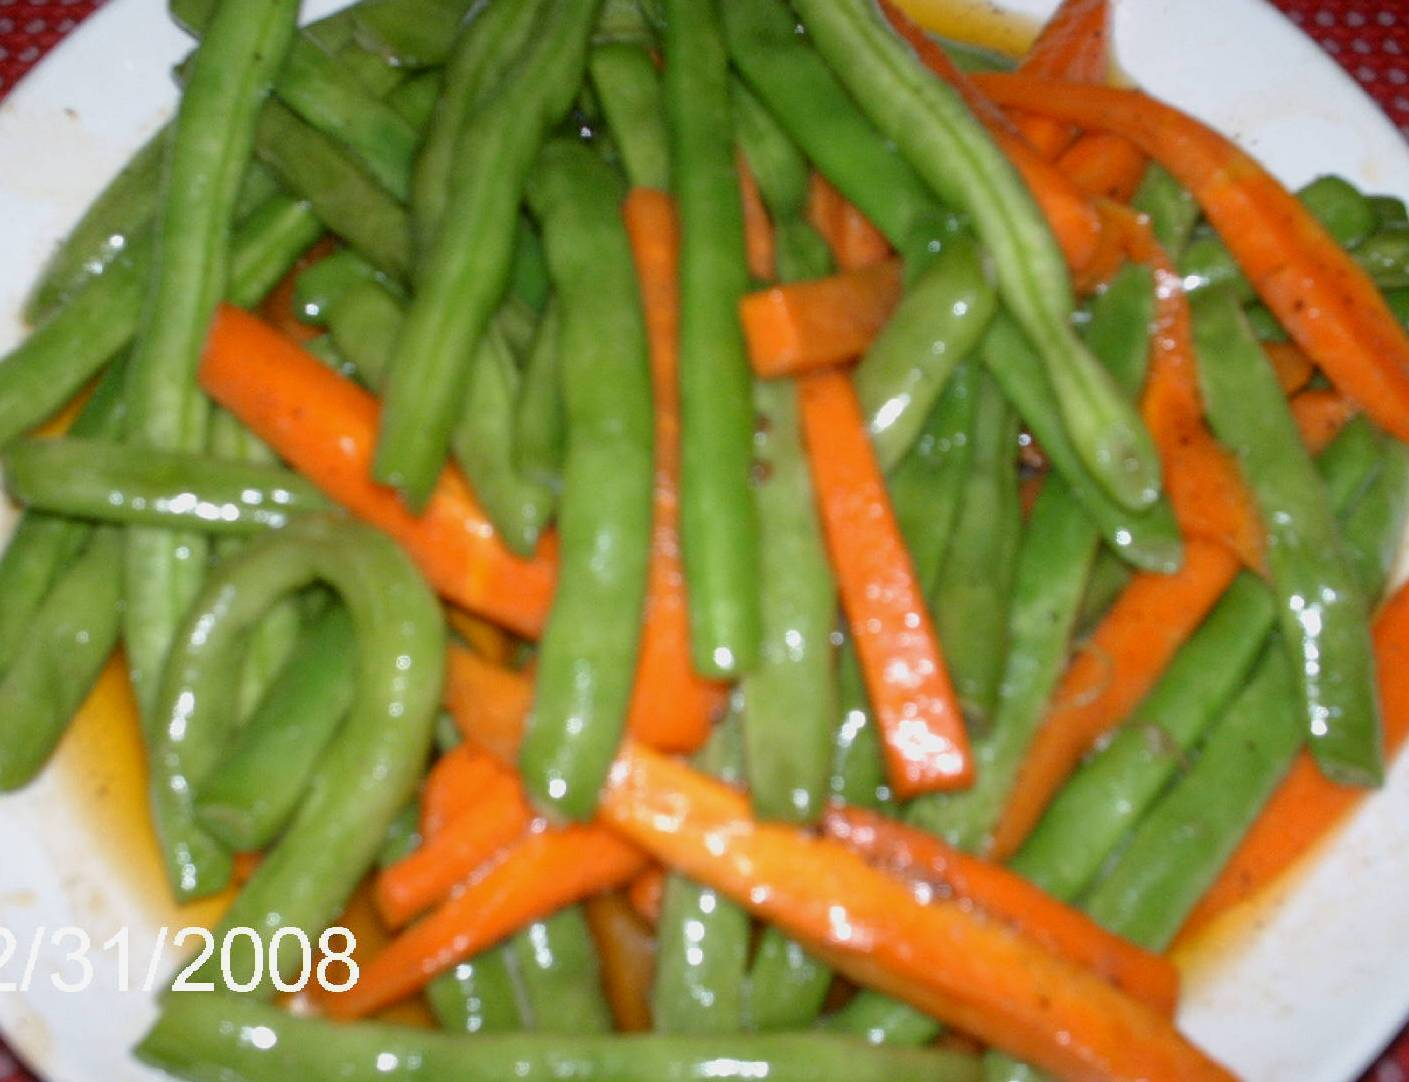 How to cook buttered beans and carrots?